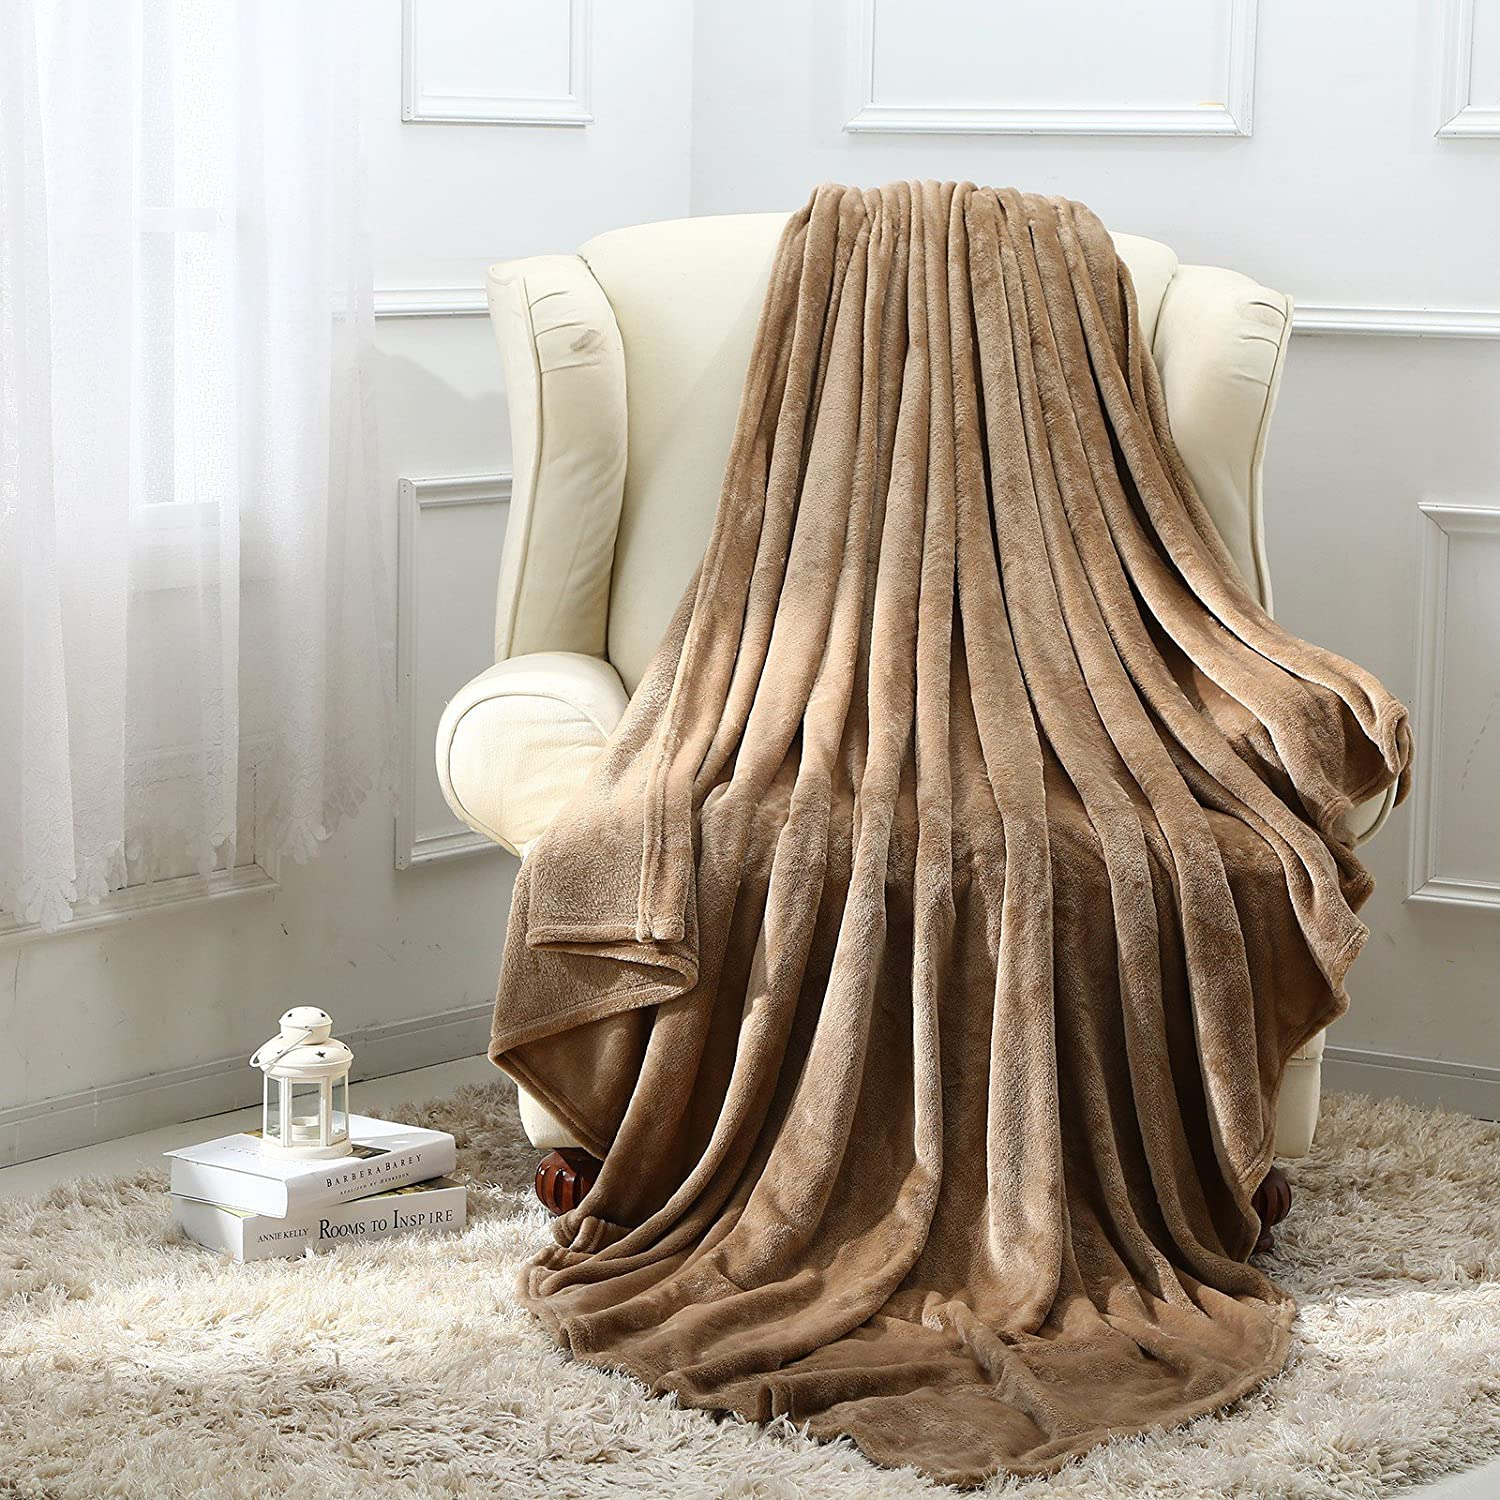 Moonen Flannel Throw and Blanket Luxurious Full Size Camel Lightweight Plush Microfiber Fleece Comfy All Season Super Soft Cozy Blanket for Bed Couch and Gift Blankets (Camel, W60 x L80)